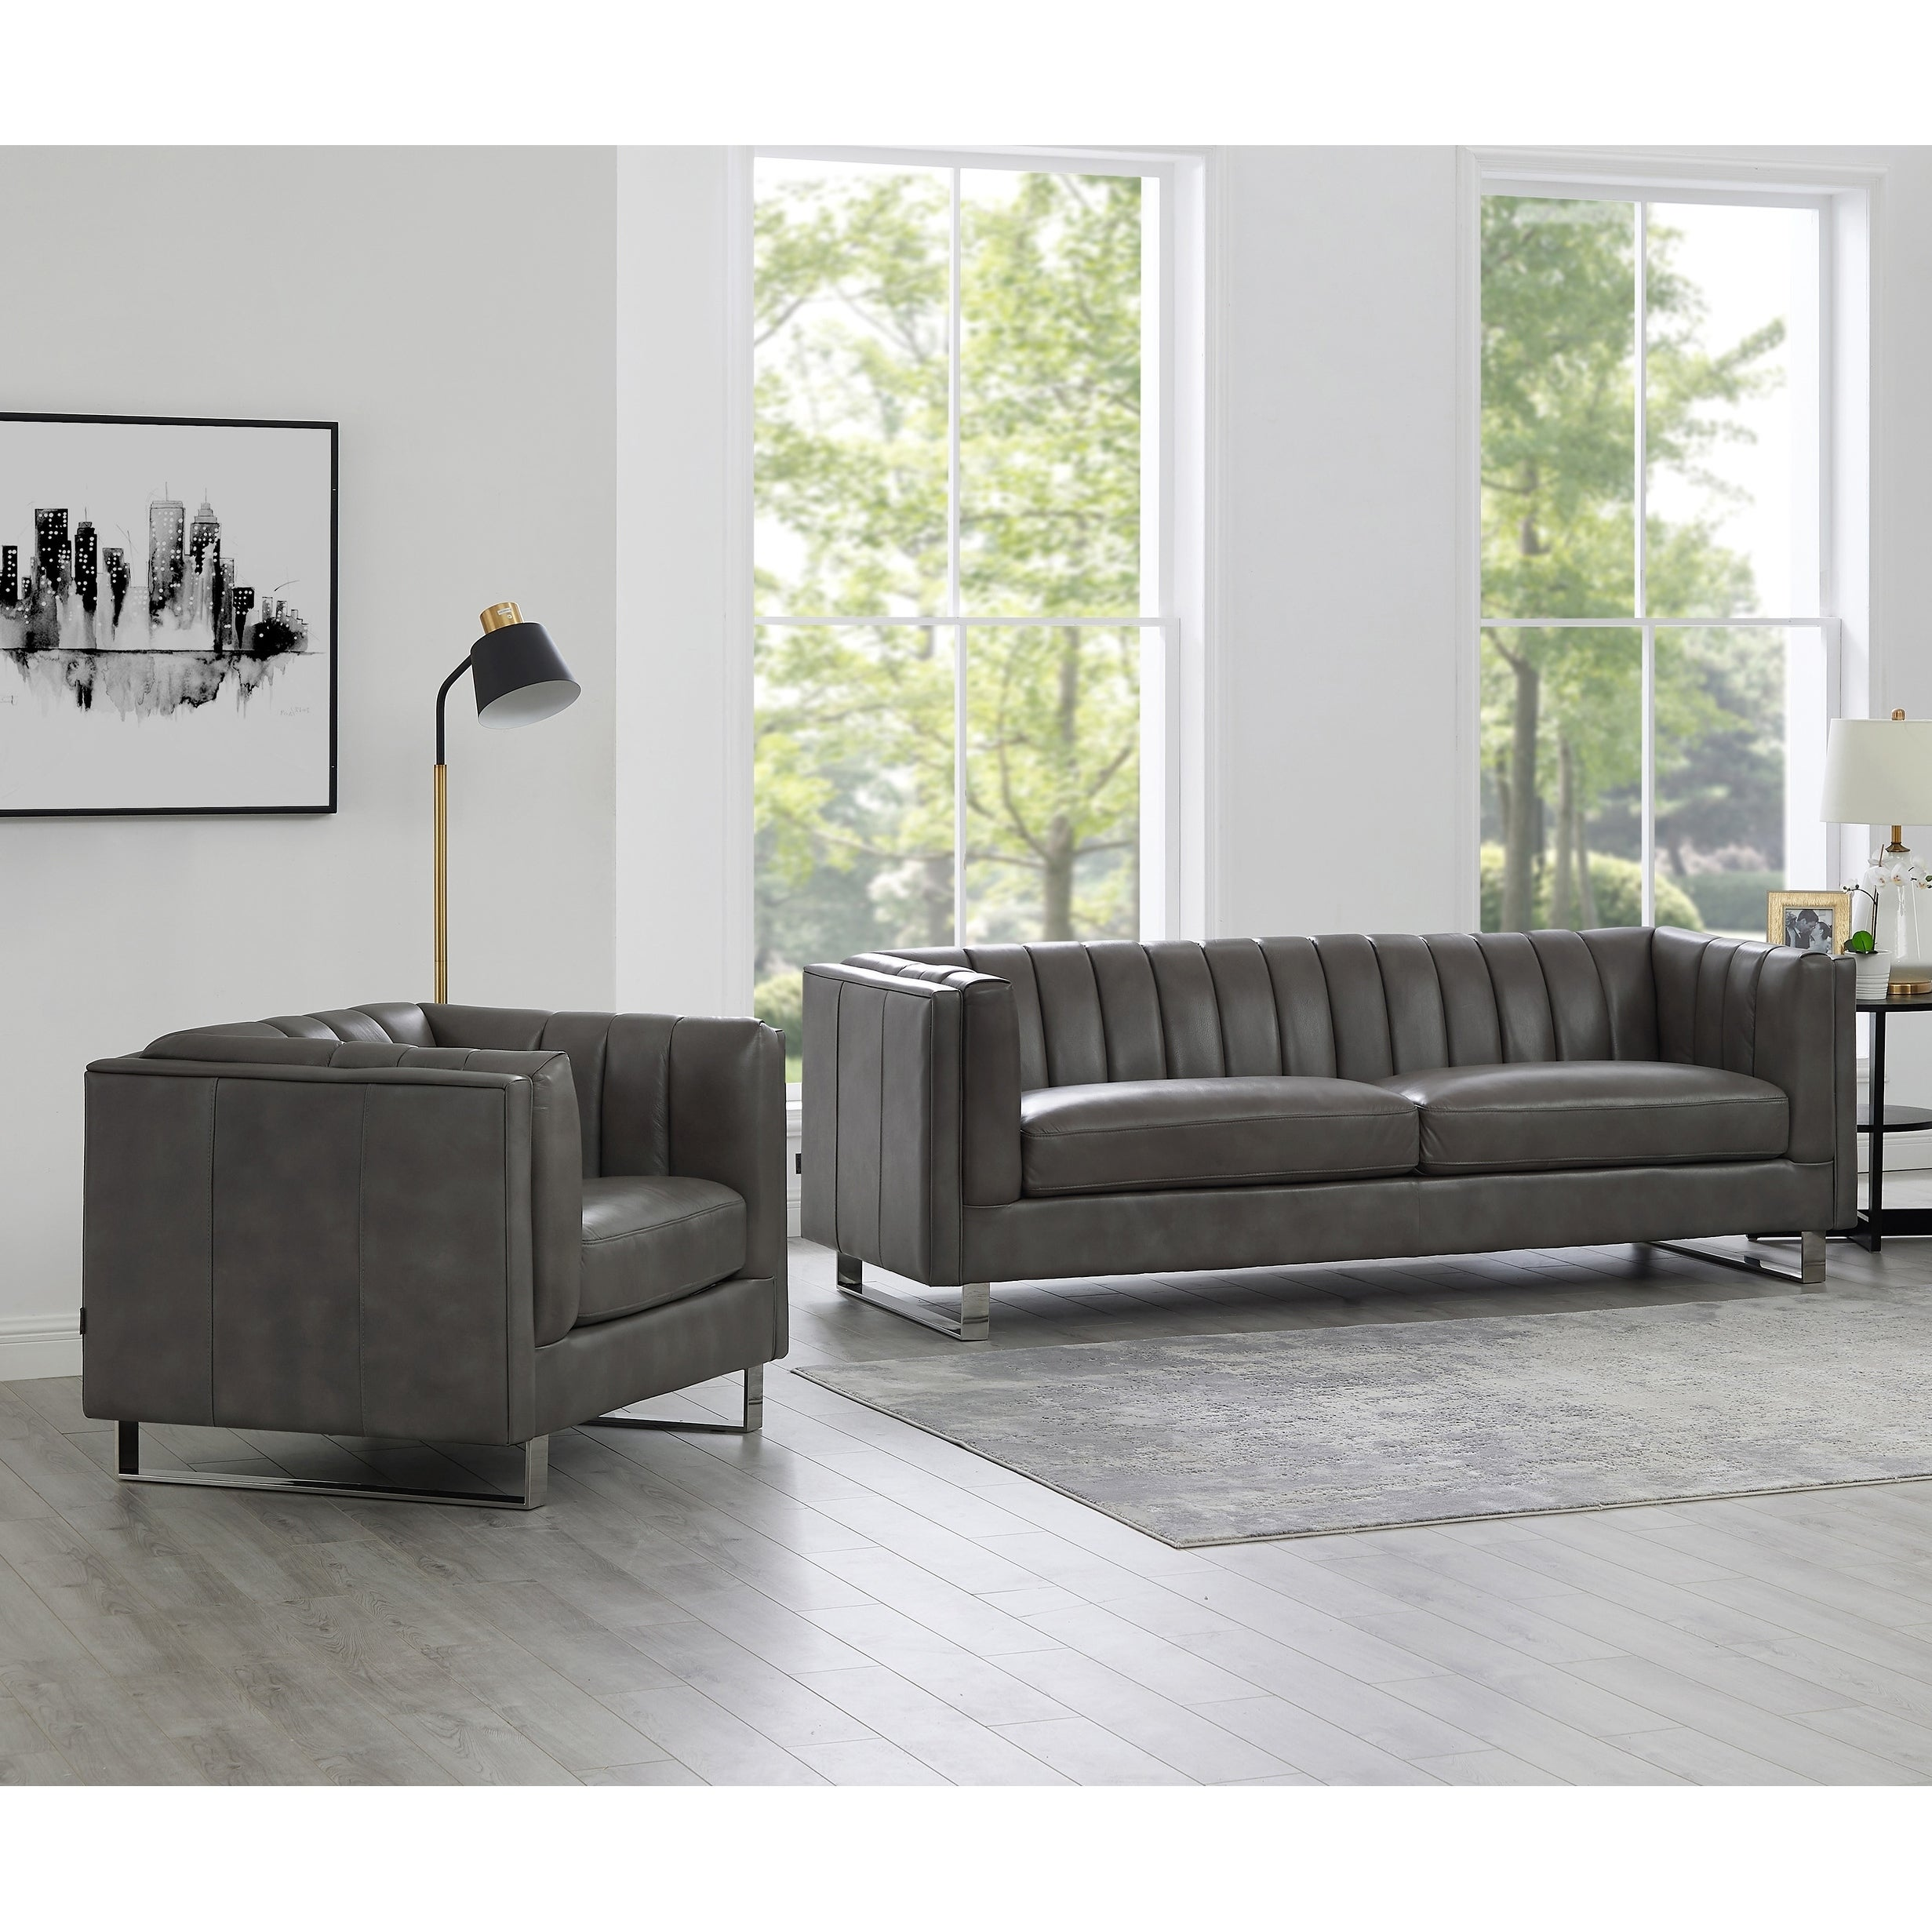 Genuine Leather Sofa And Chair Set